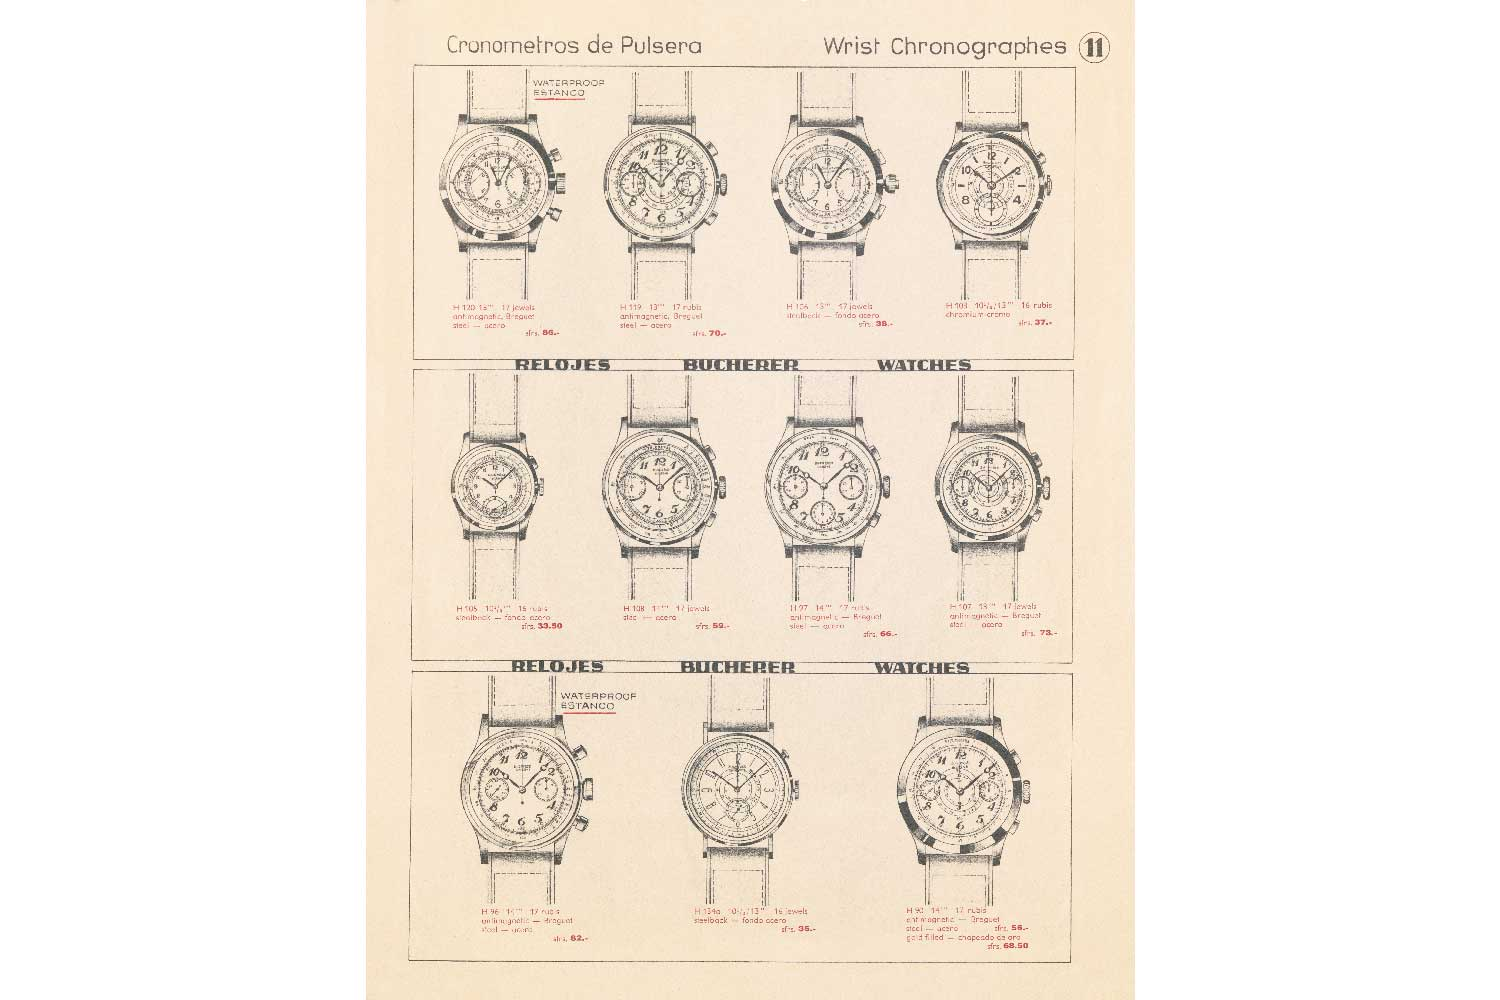 Carl F. Bucherer's chronographs made during the 1940s.